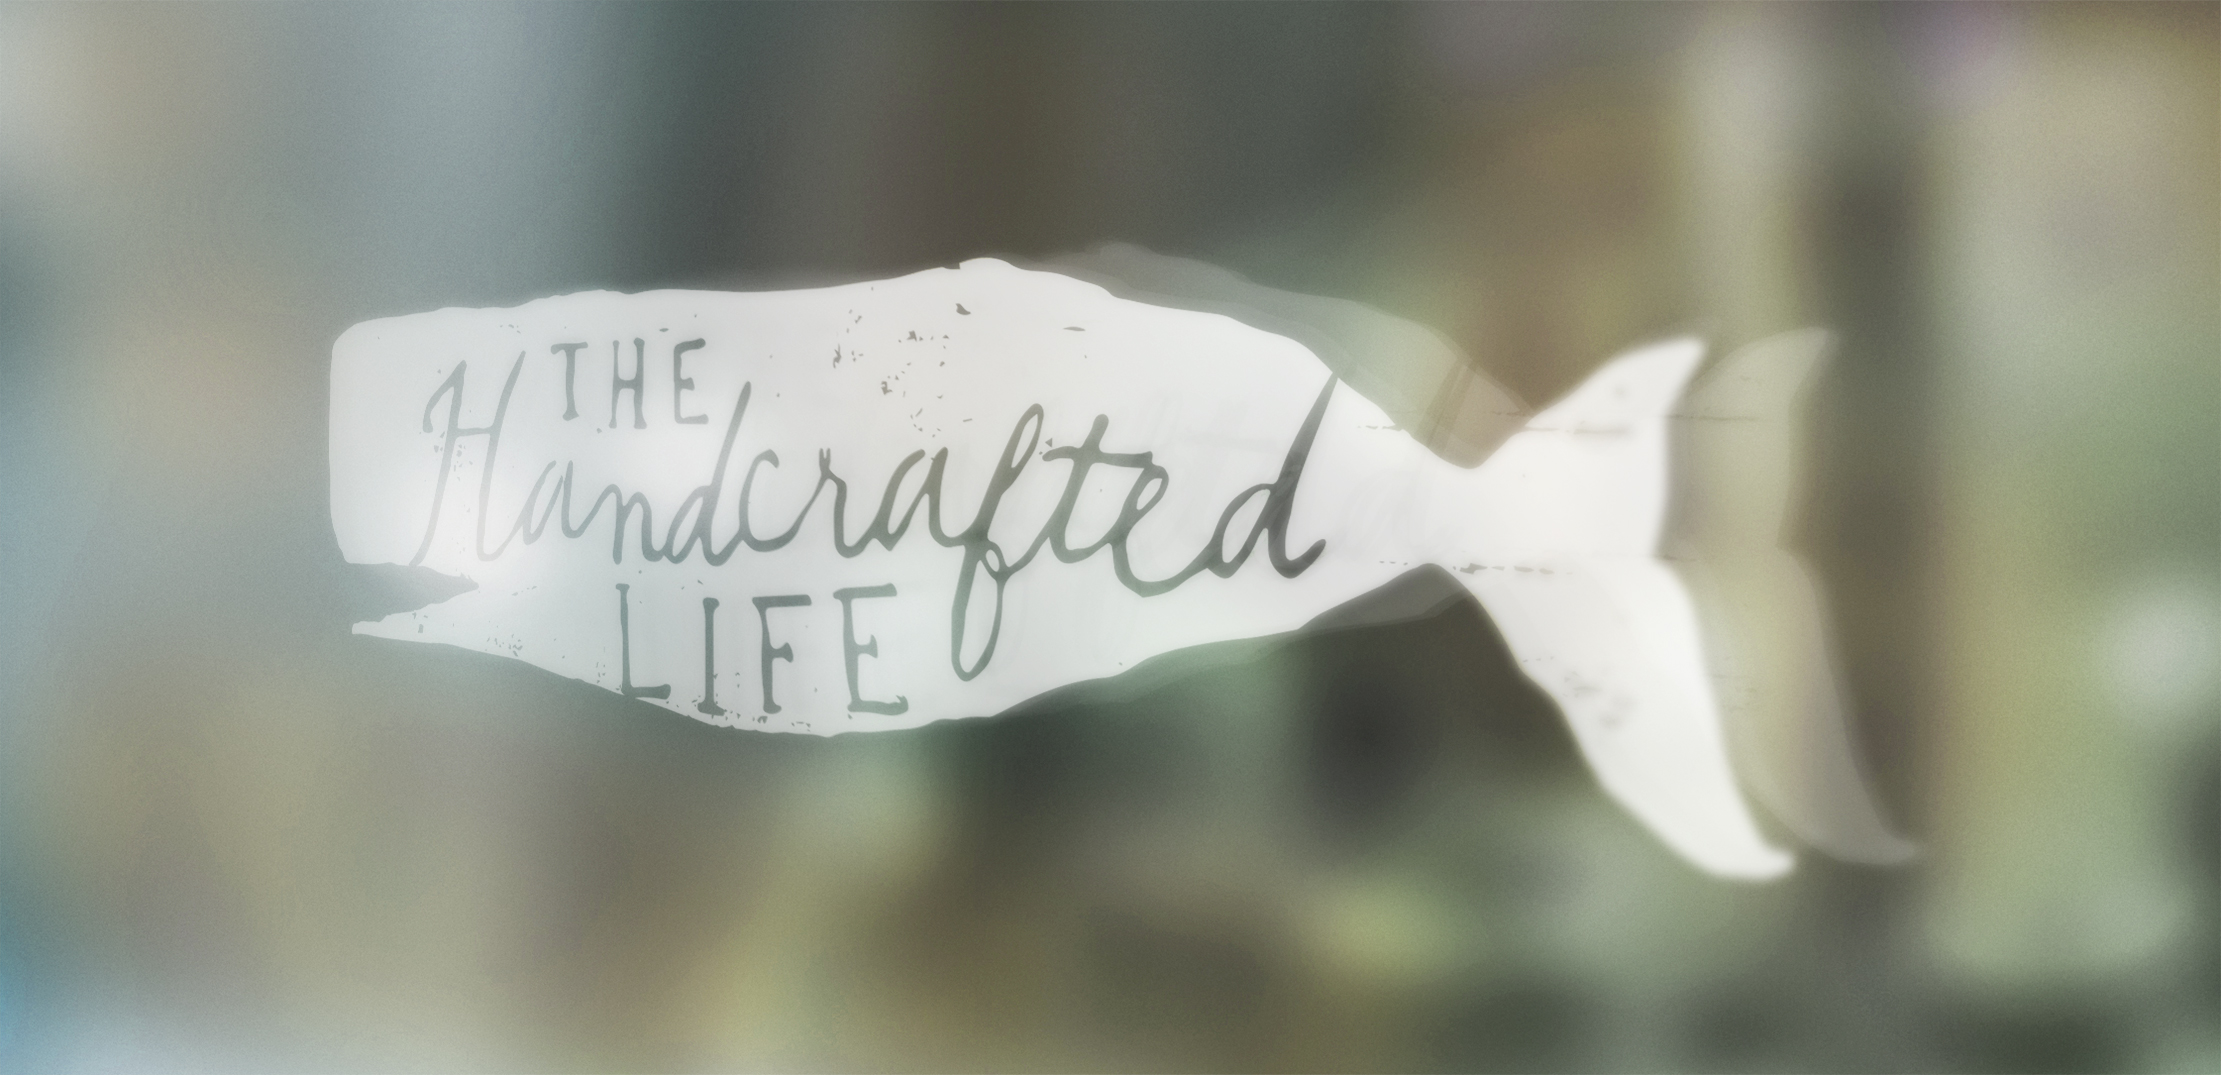 The Handcrafted Life Window Decal Logo Design by Just Make Things